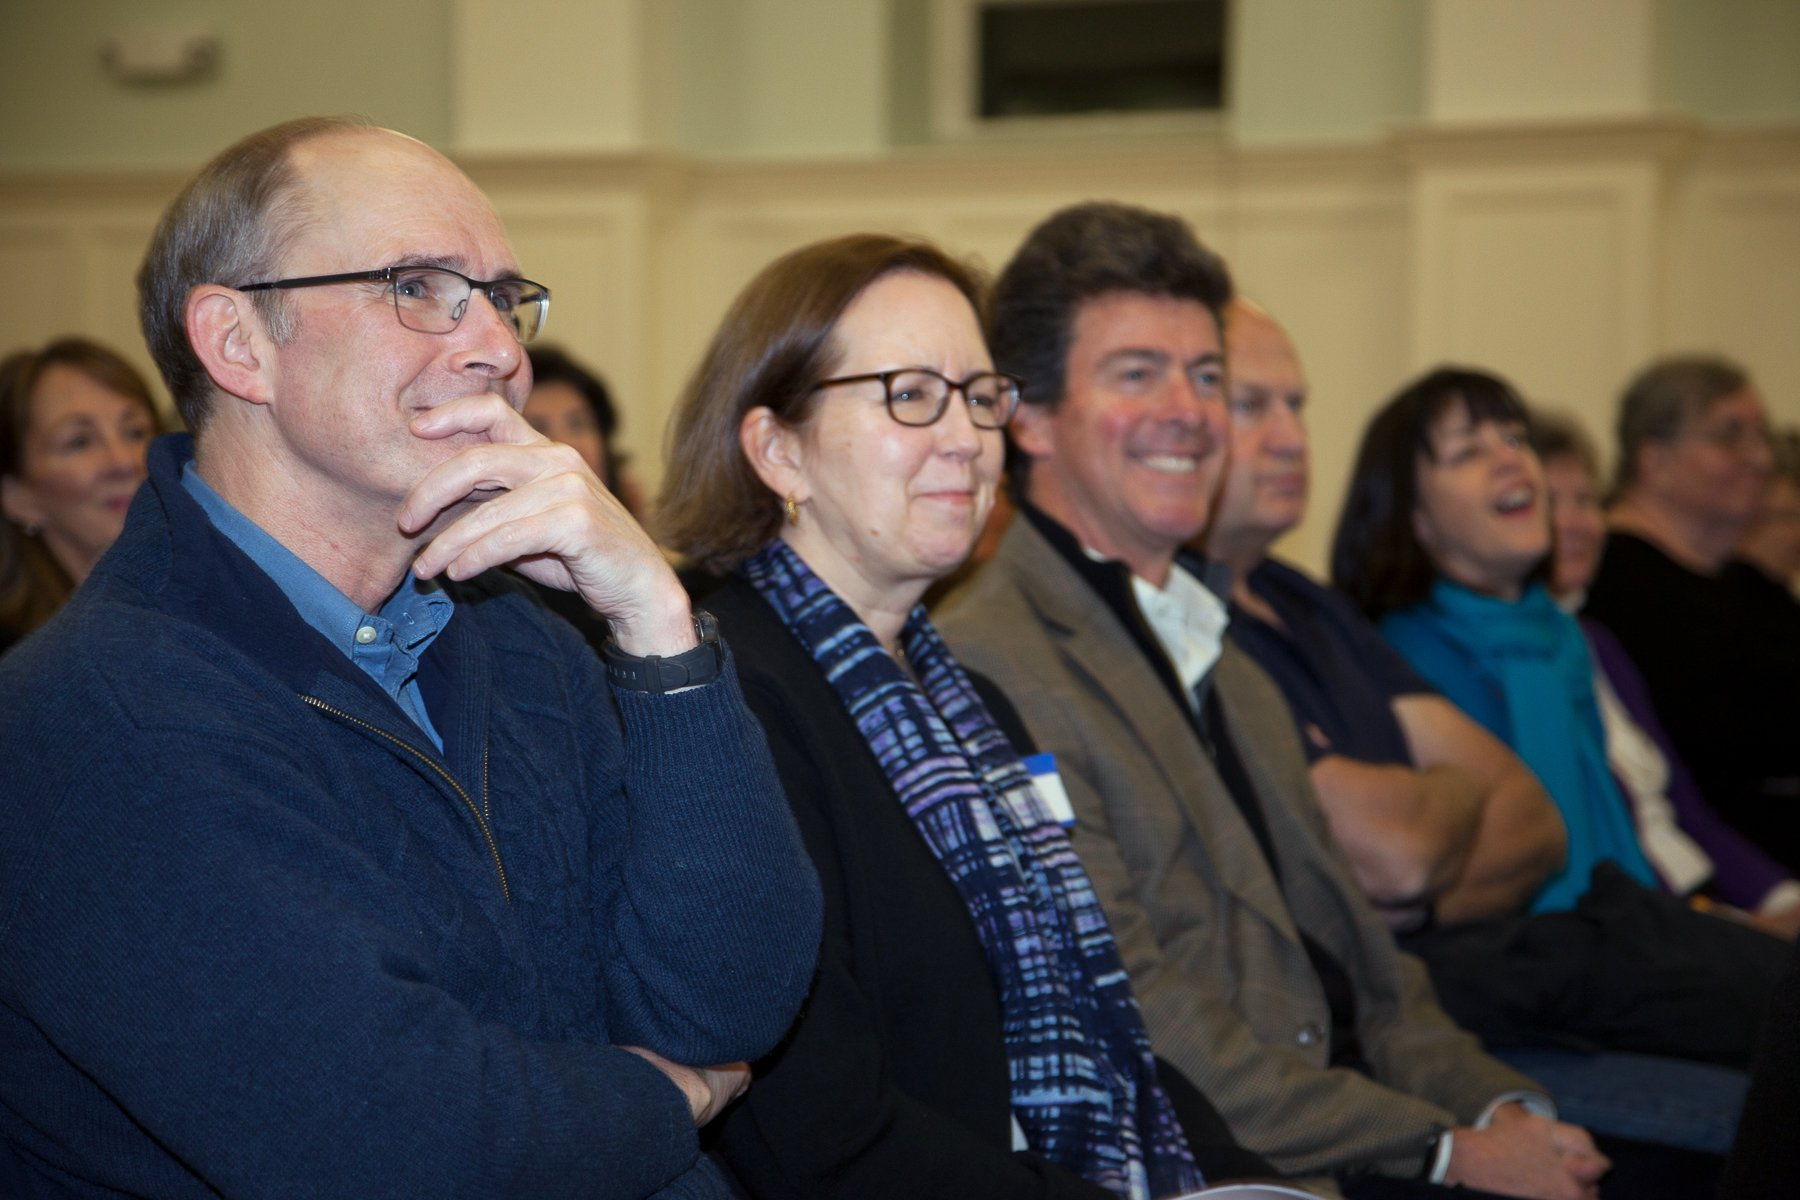 """Some of the 200 attendees enjoying the expert panel discussion titled, """"Election Aftermath: Faith & the Common Good,"""" held on Dec 7, 2016, at St. Catherine of Siena Parish, Riverside, Conn., and co-sponsored by Religion News Service."""